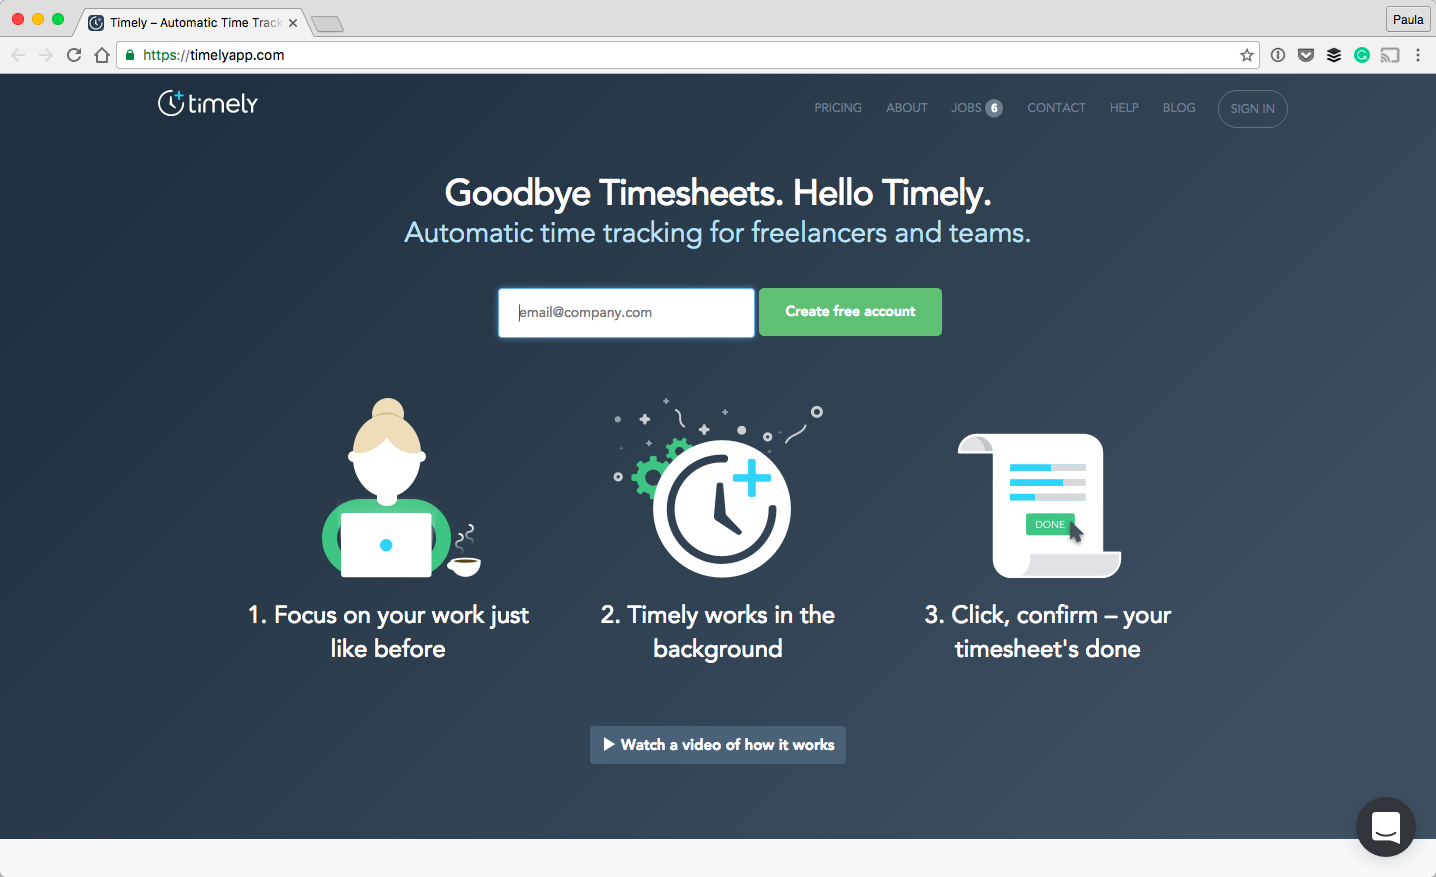 timely-automatic-time-tracking-for-freelancers-and-teams-2016-10-02-02-44-41